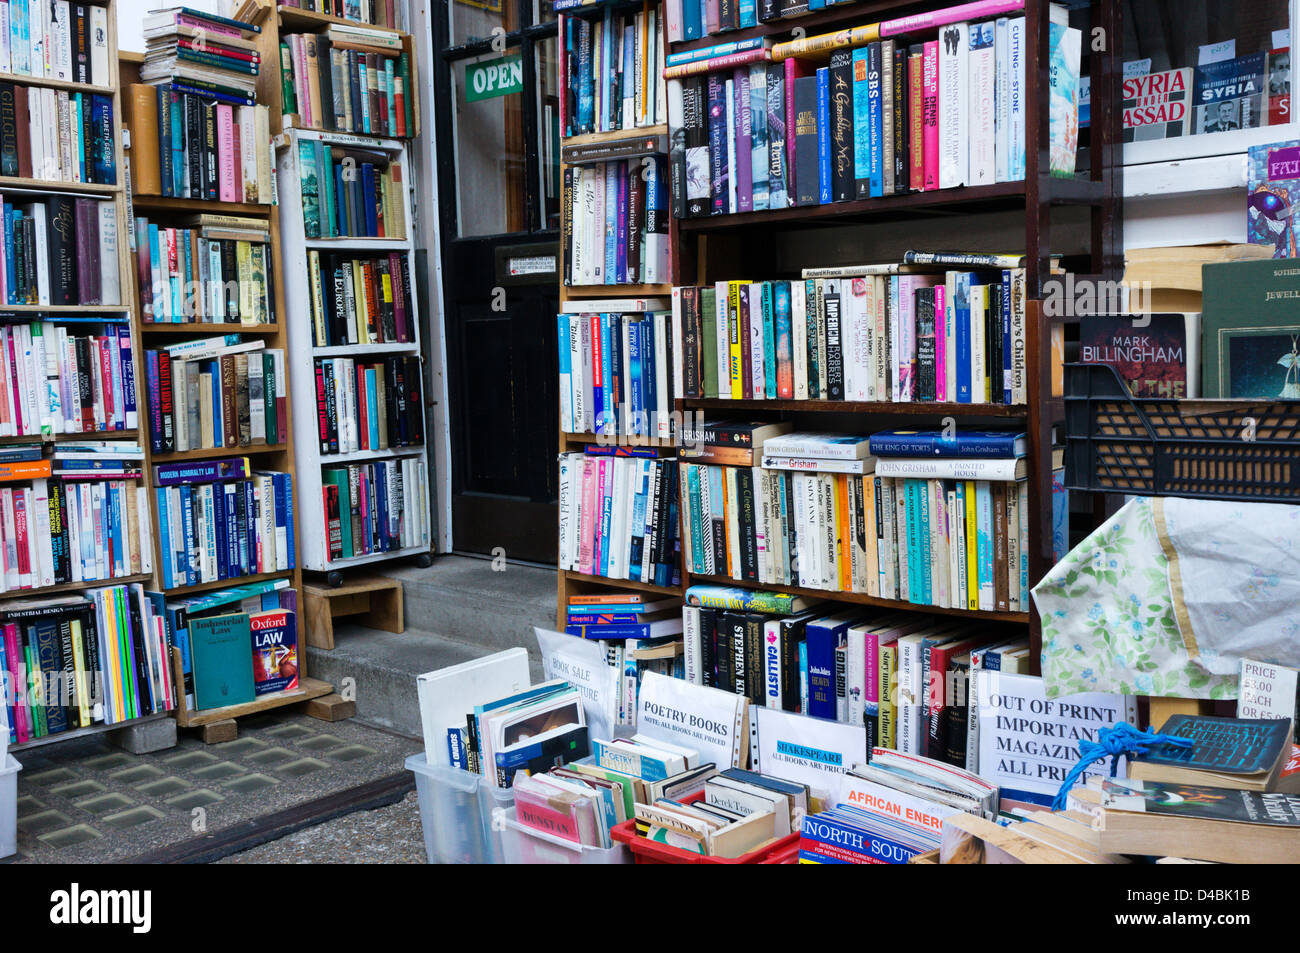 Books stacked on shelves outside a secondhand bookshop. - Stock Image